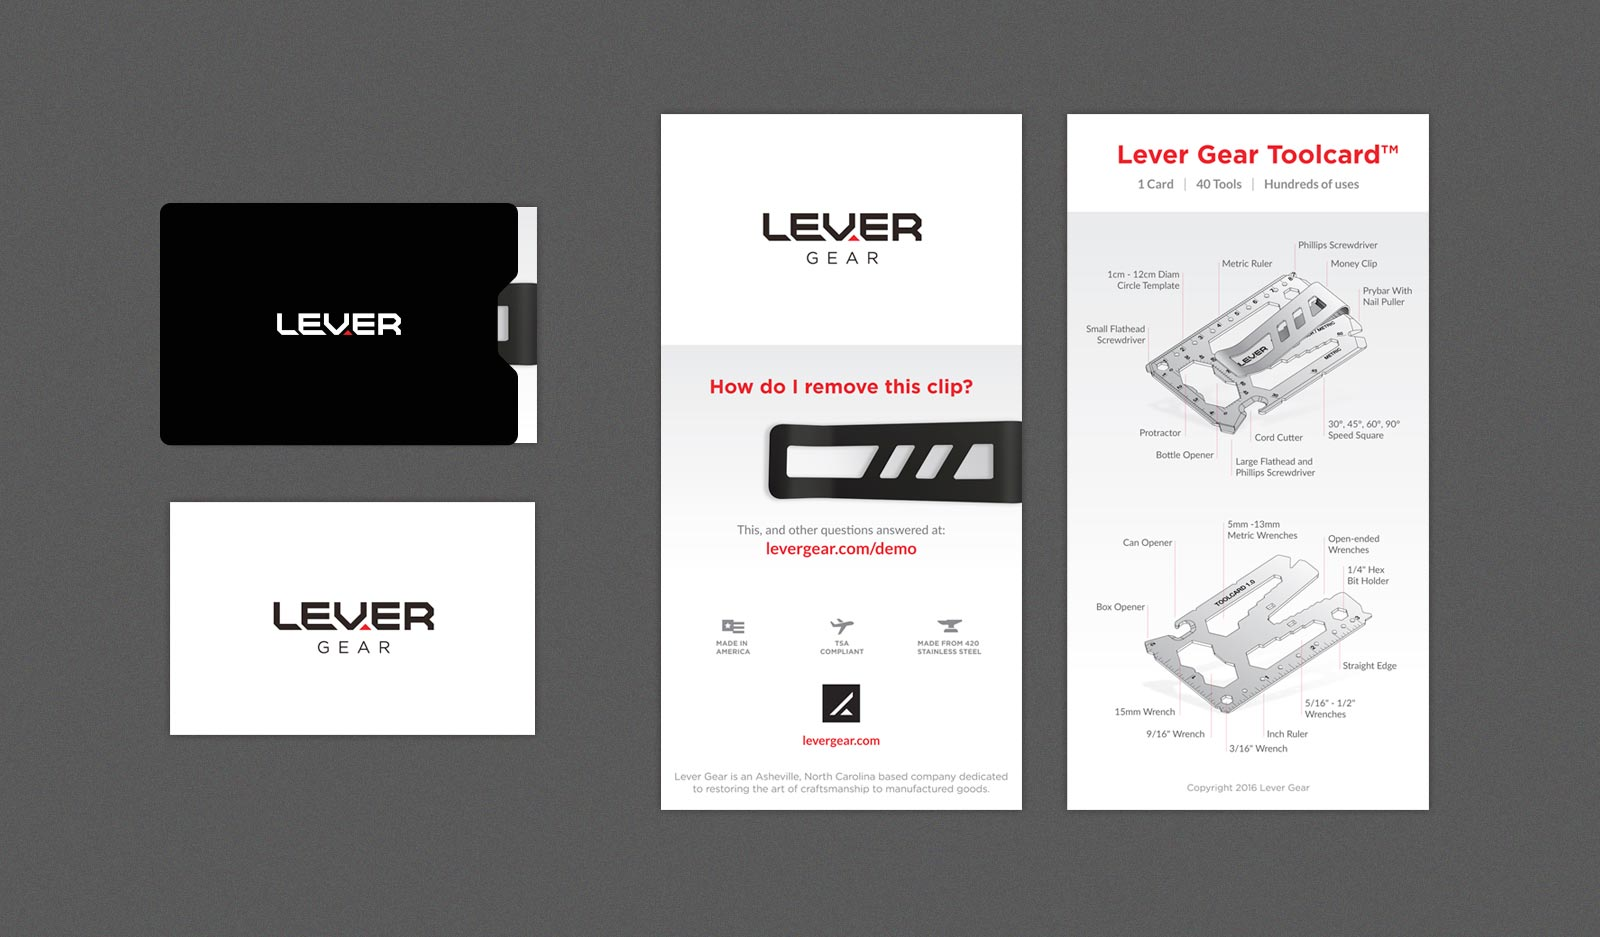 Lever Gear packaging sleeve/envelope shown with information brochure unfolded, showing technical specifications and features of Tool Card.